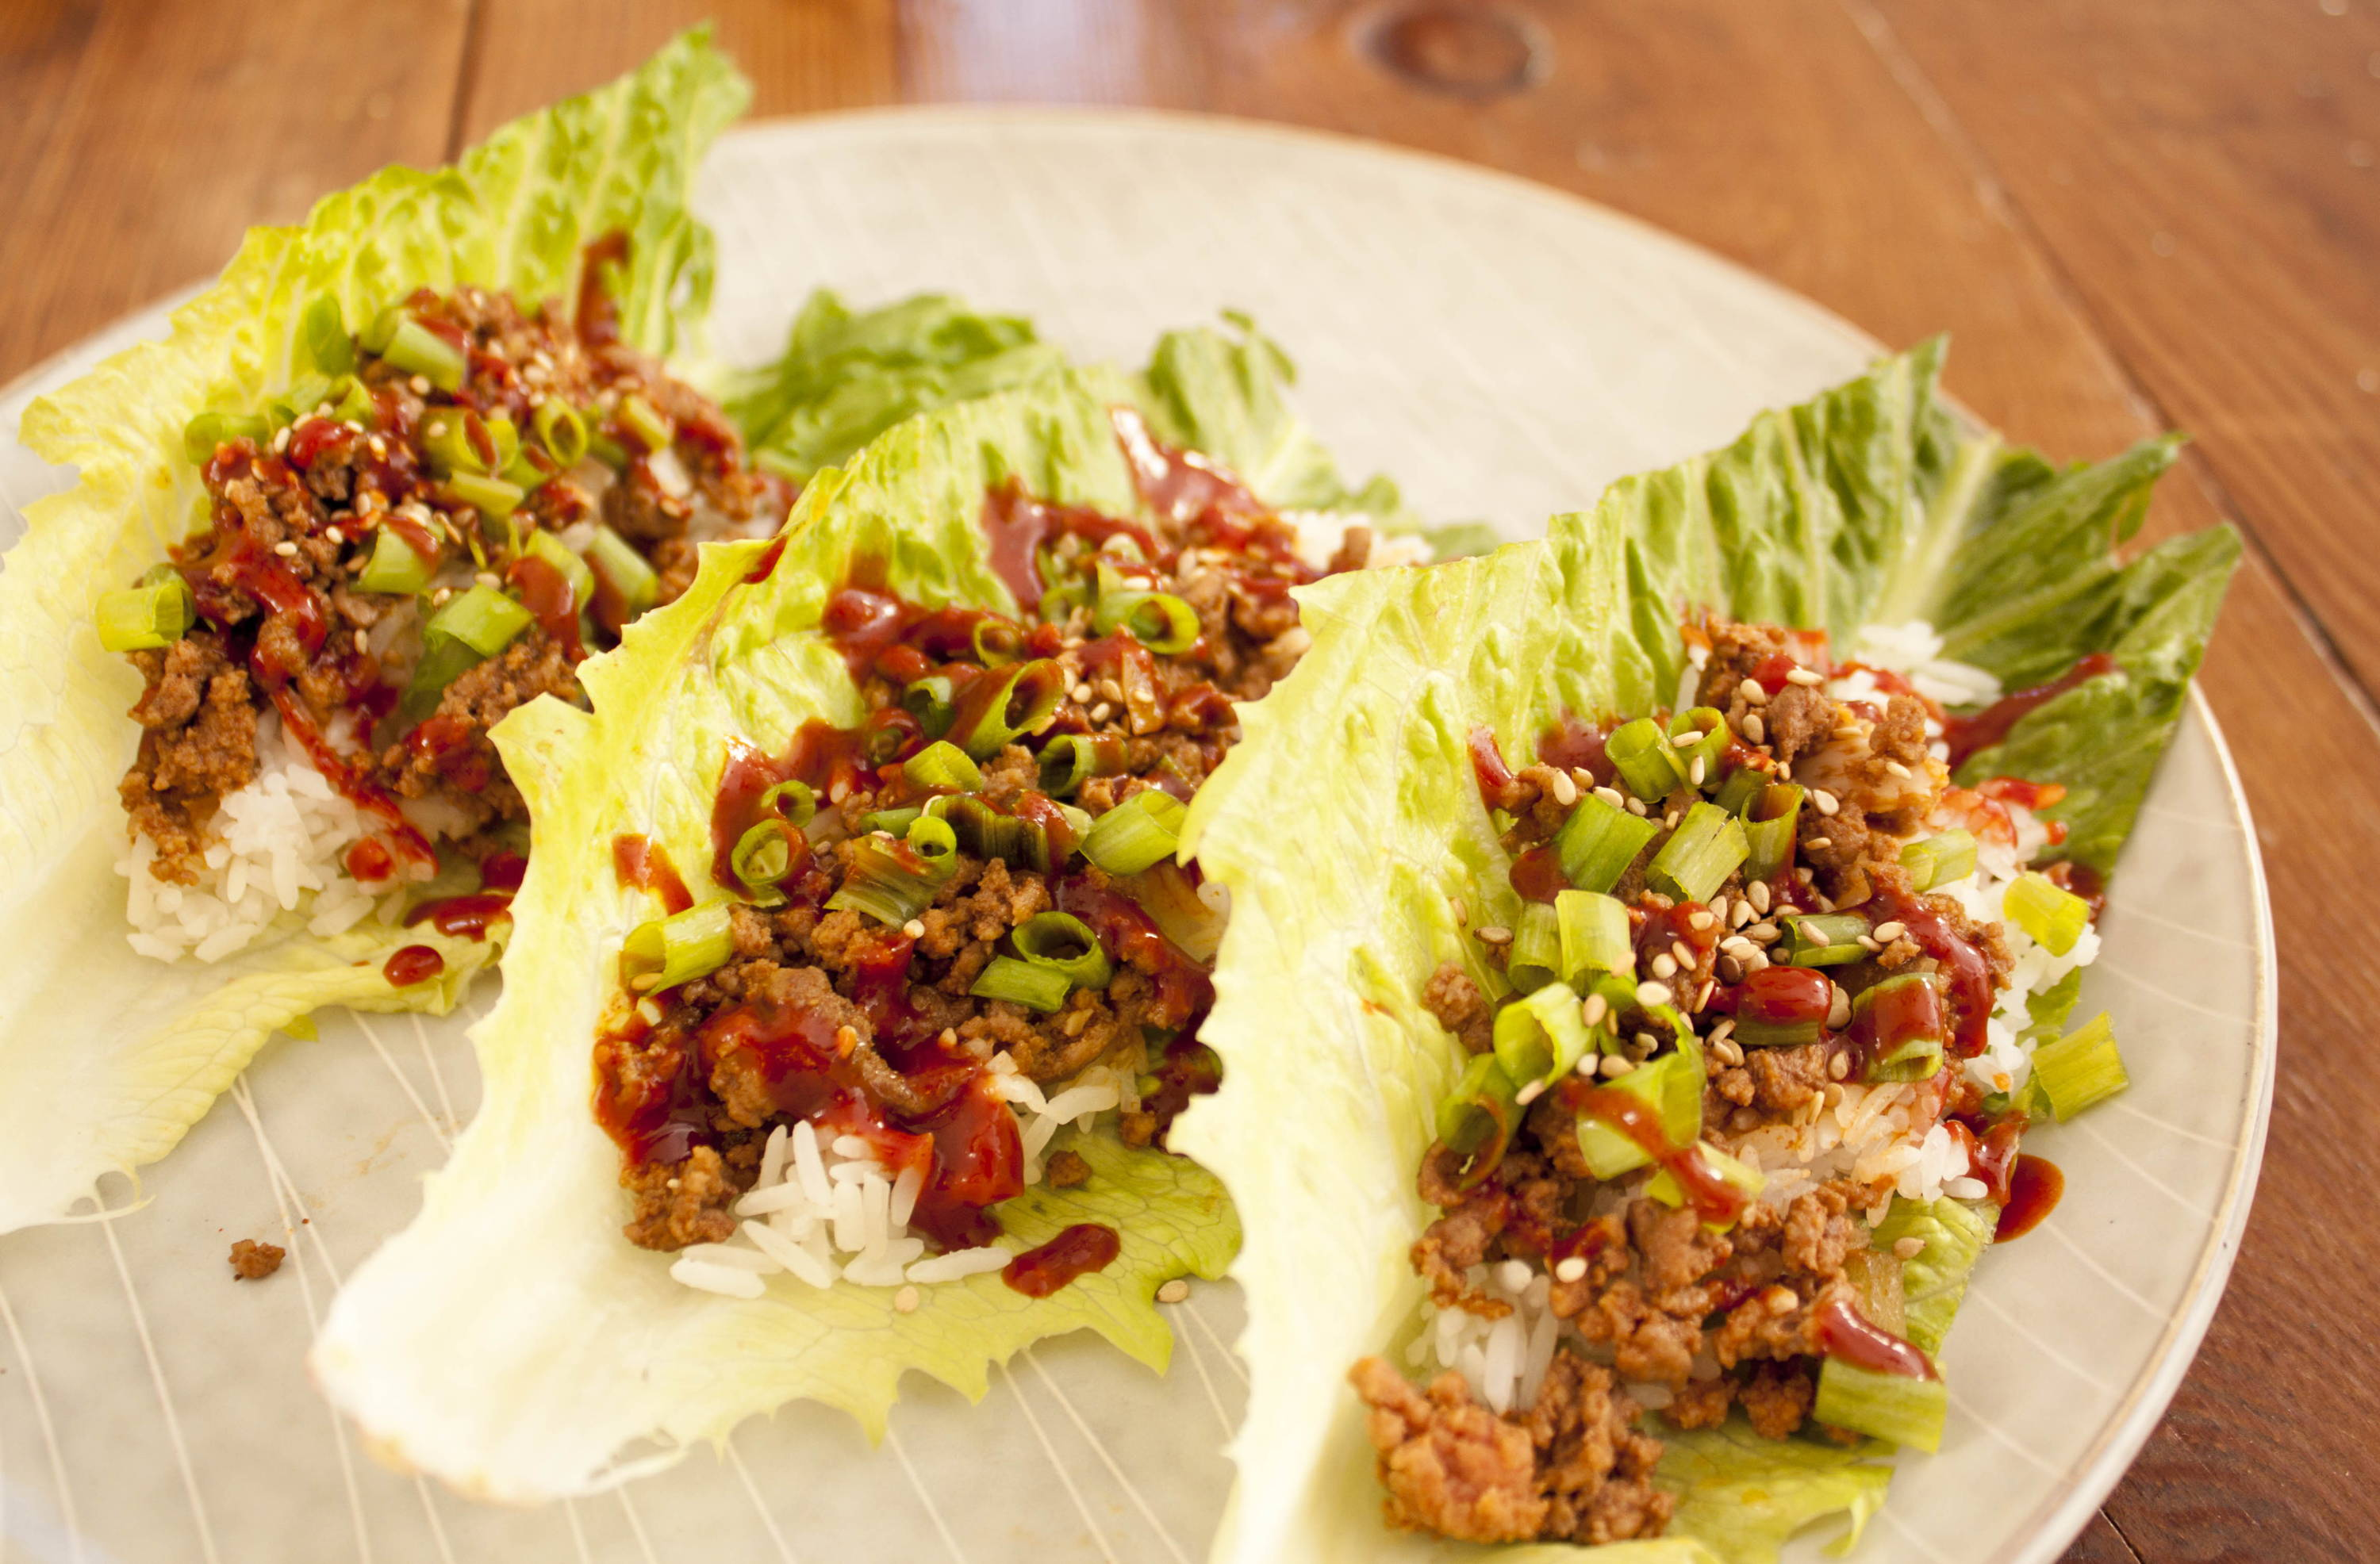 Use KPOP Sauce in this healthy recipe for Korean Pork Lettuce Wraps